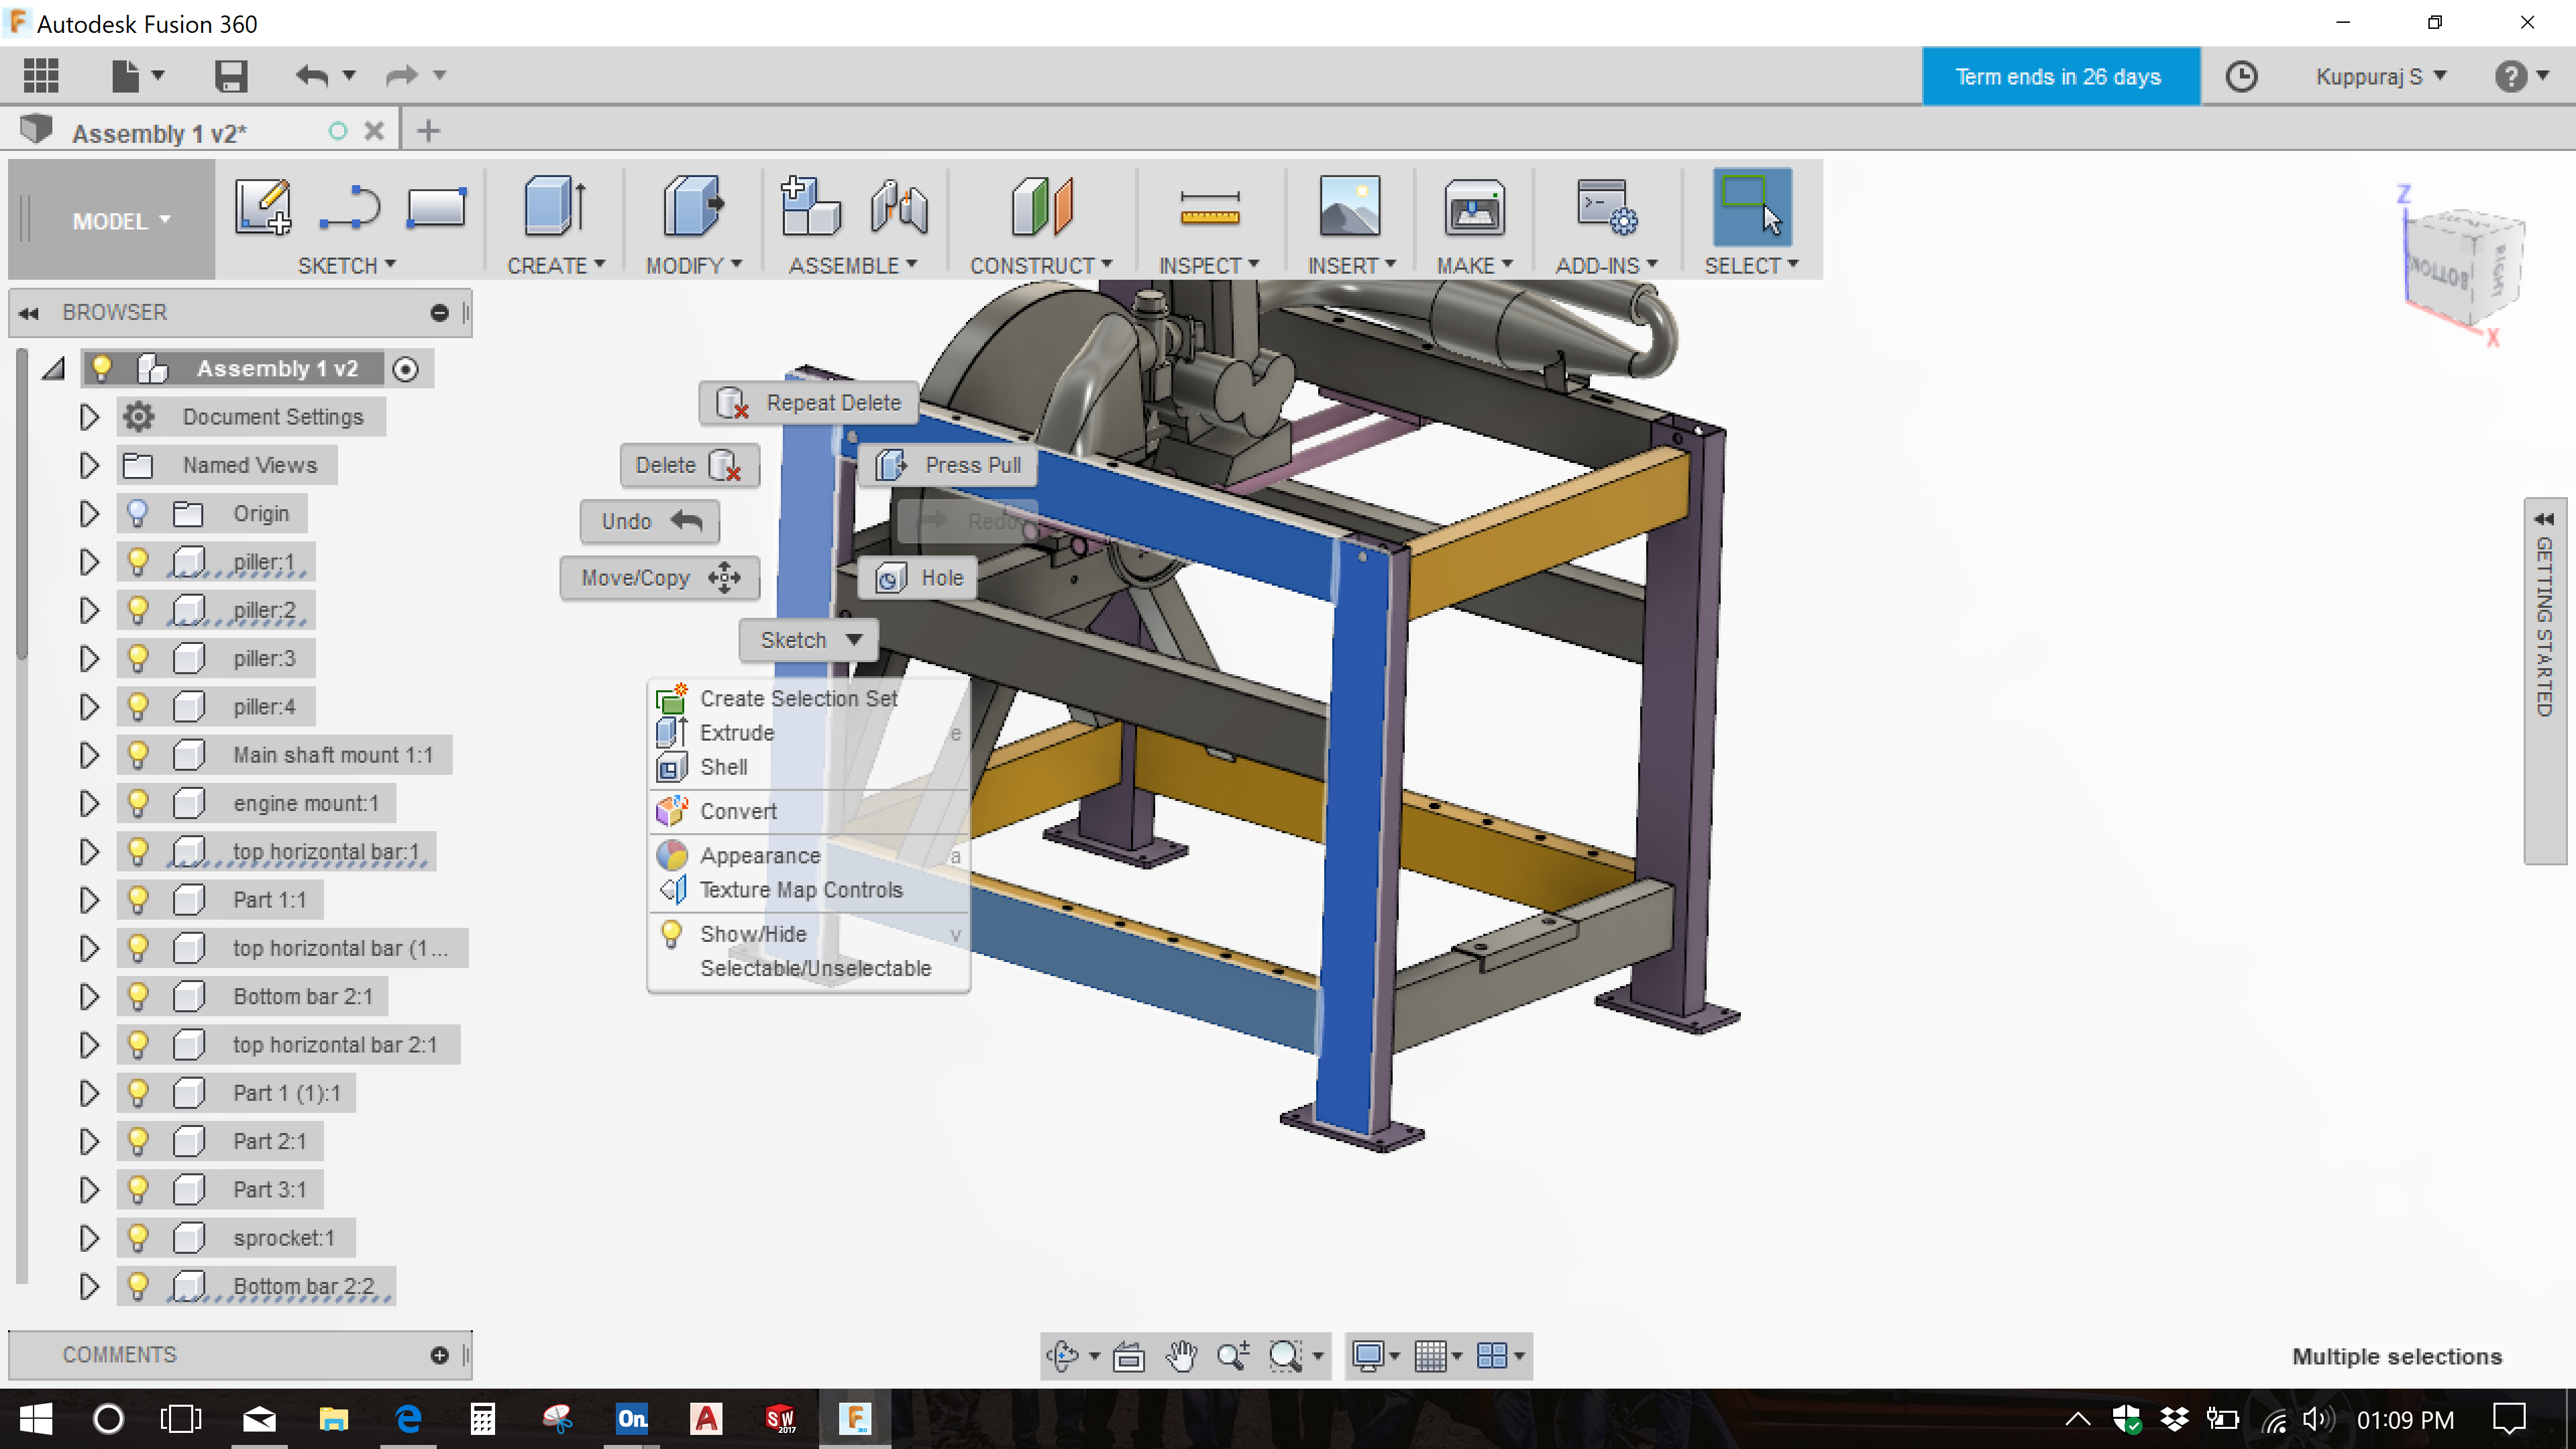 Solved: I want to change all my designs from Onshape to